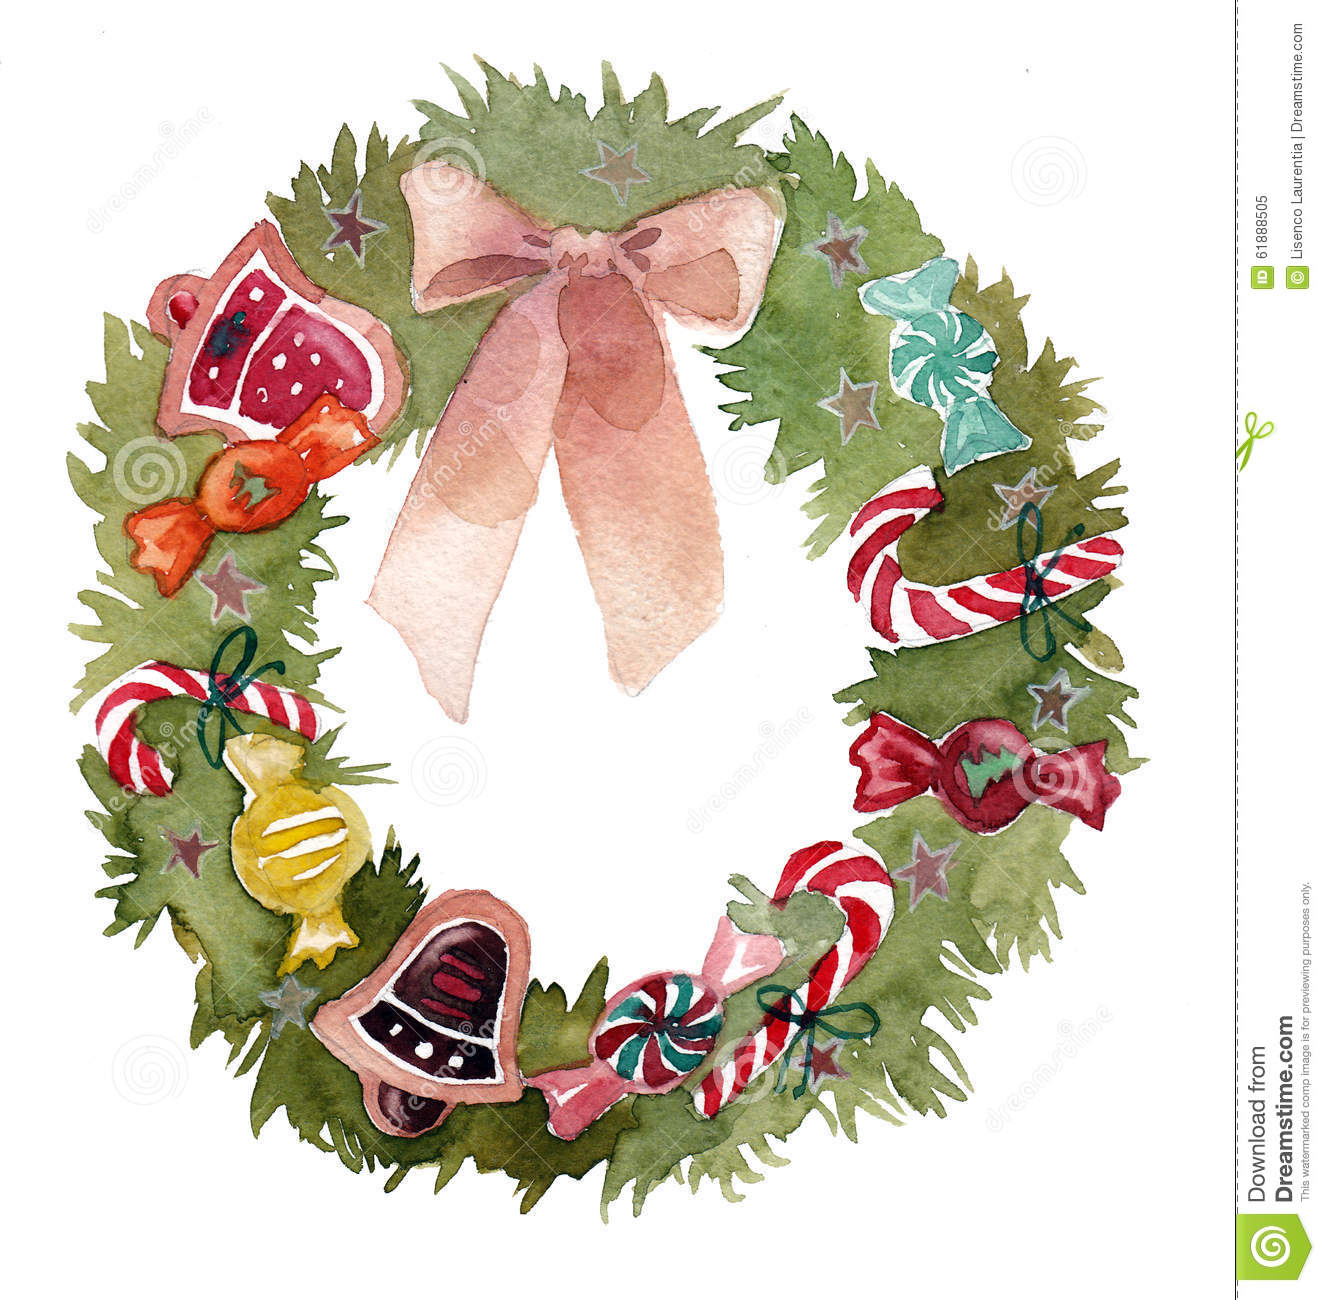 Watercolor Christmas Wreath Frame Isolated On The White Background